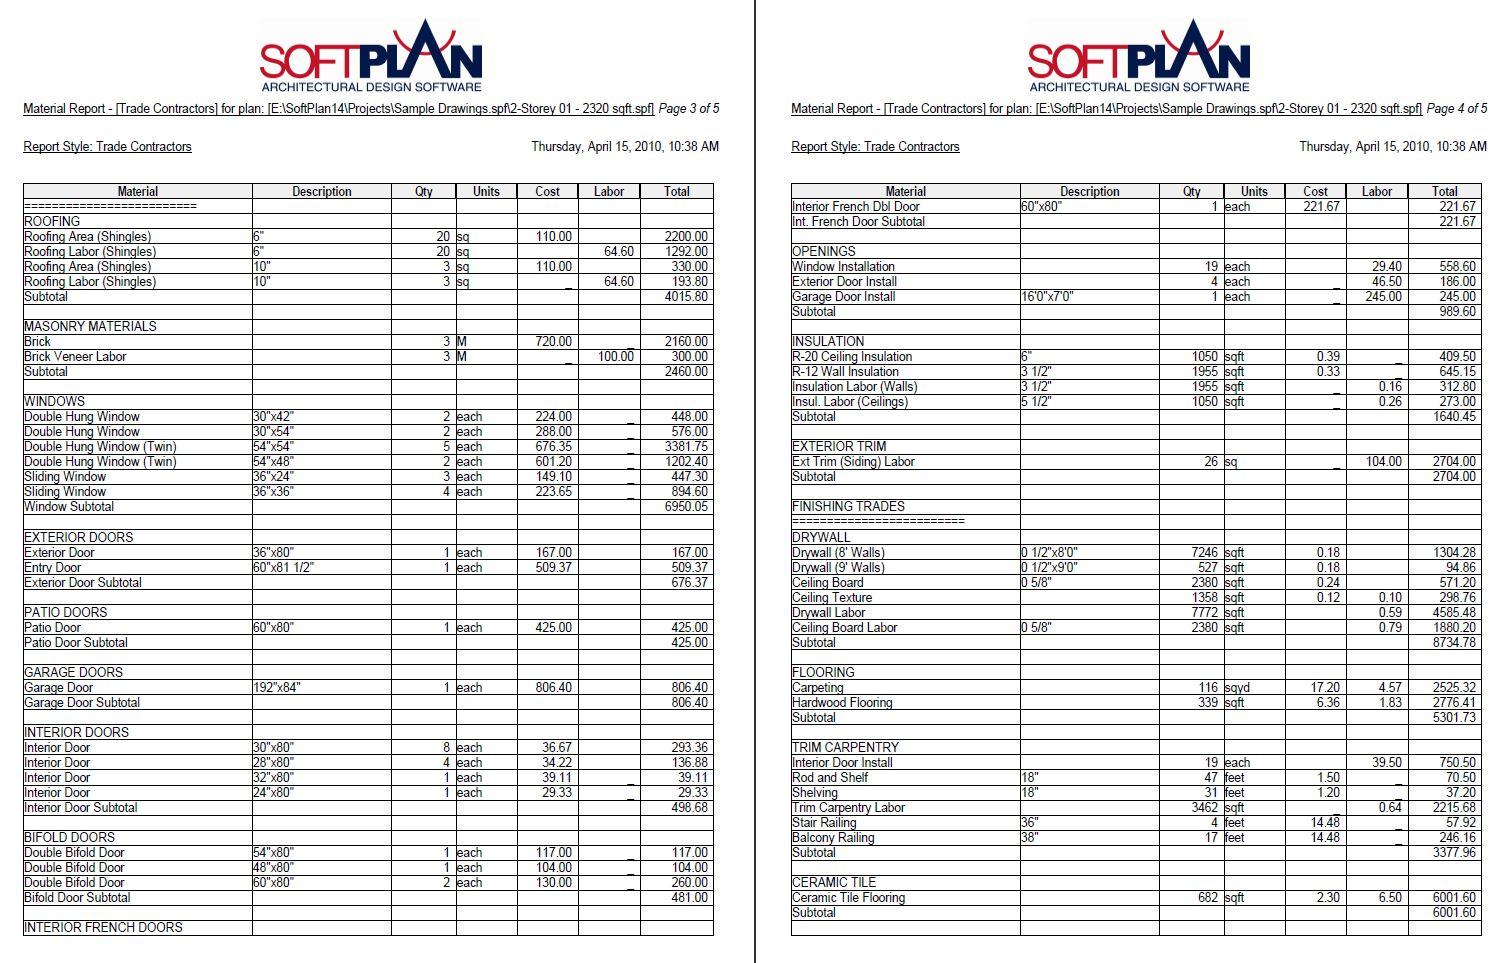 Softplan Samples Softlist Material Reports